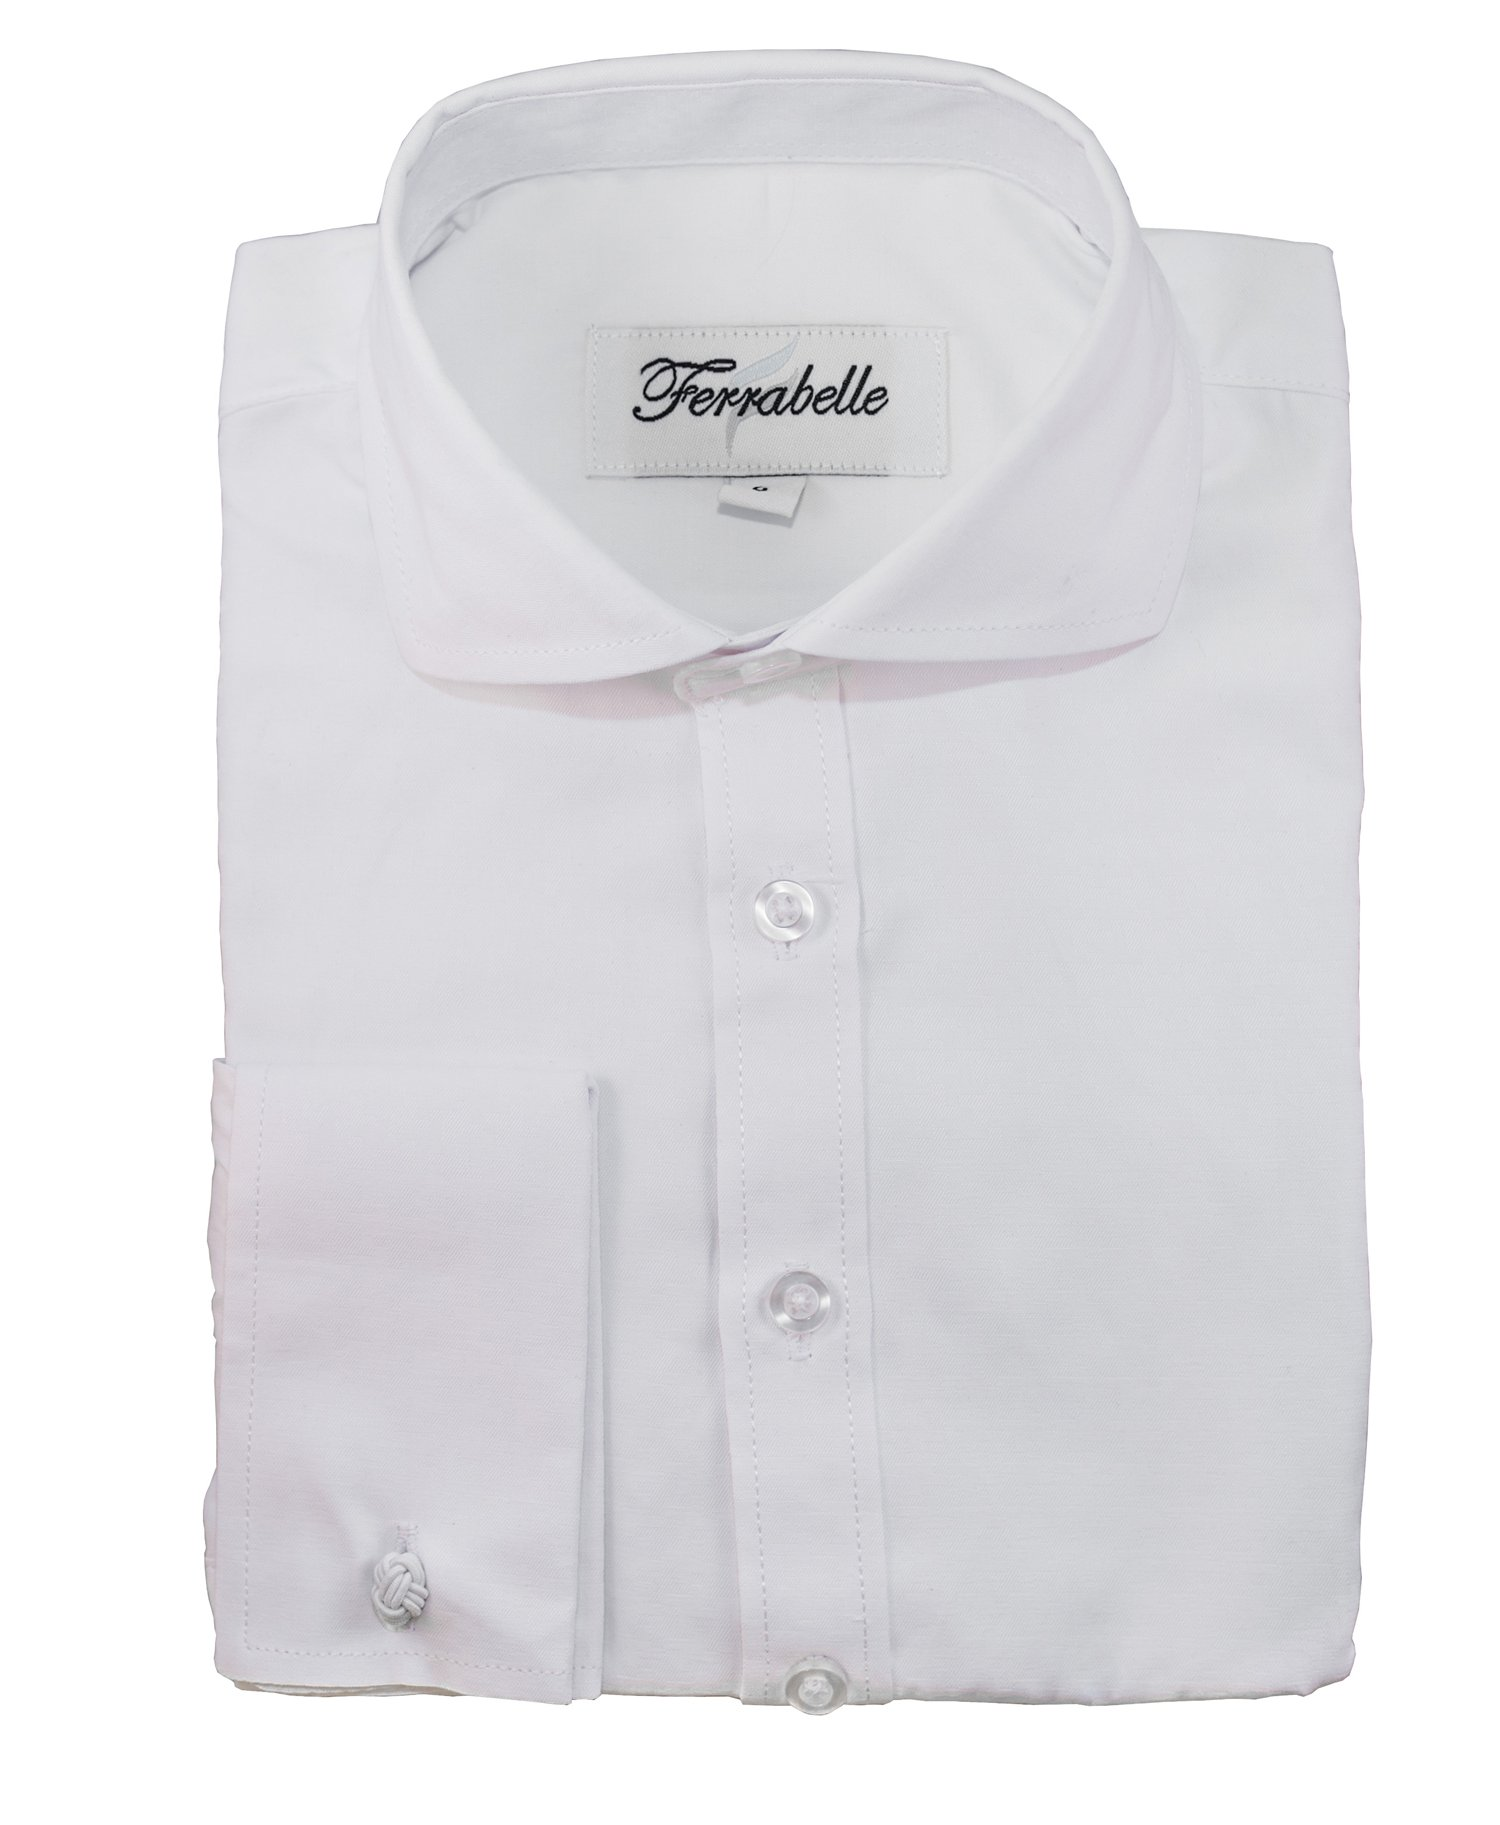 Ferrabelle Boys Shirts for Suit Formal Dress Button Down Long Sleeve with French Cuff and Cufflinks White 14